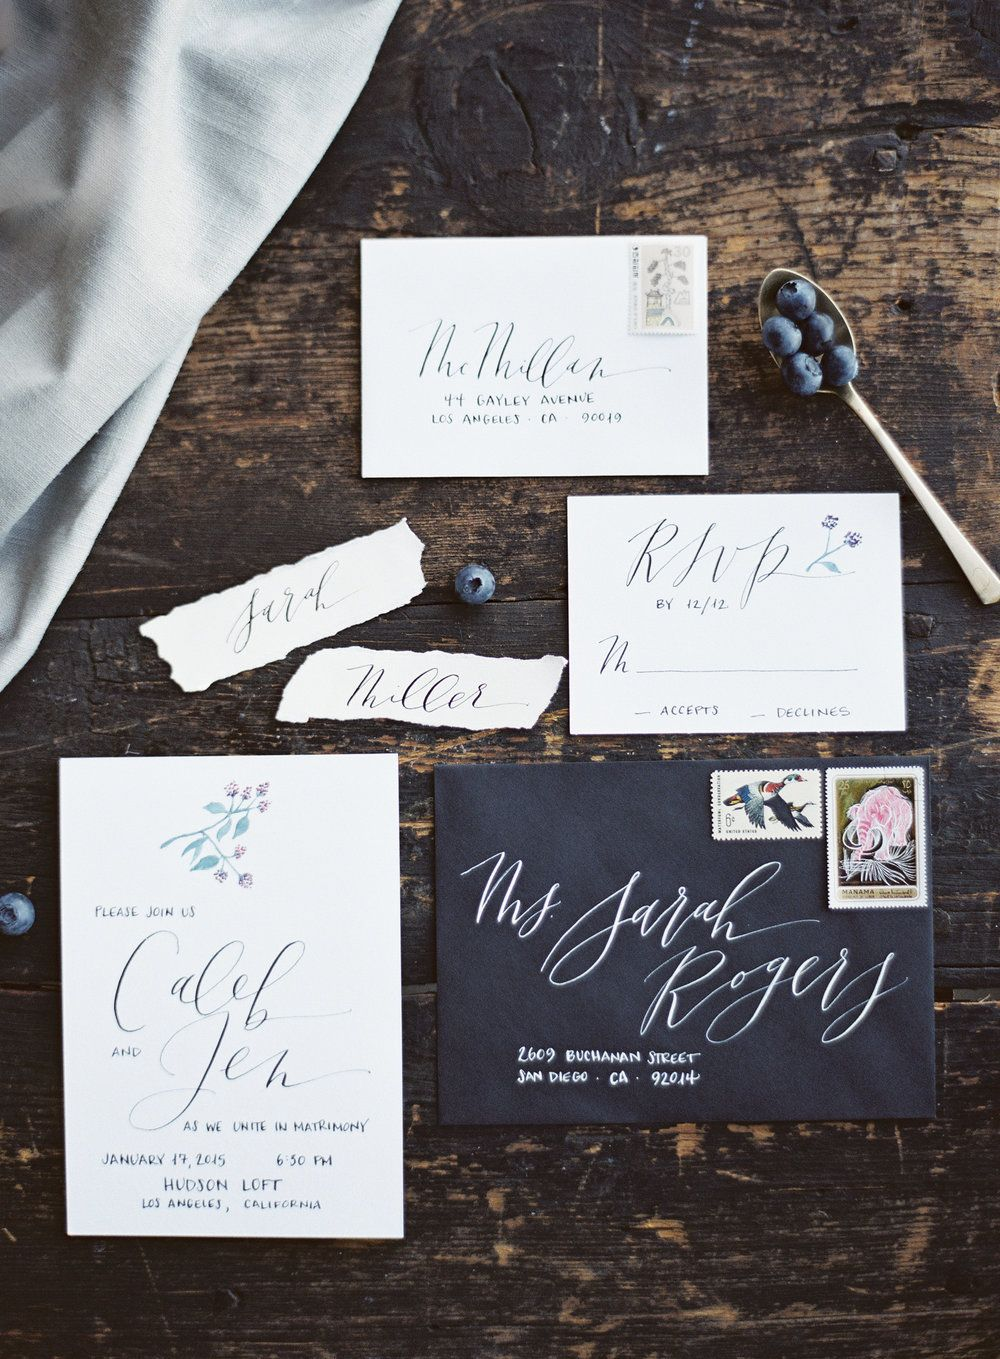 Downtown los angeles wedding invitation suite modern calligraphy by downtown los angeles wedding invitation suite modern calligraphy by script merchant calligraphy design to stopboris Gallery